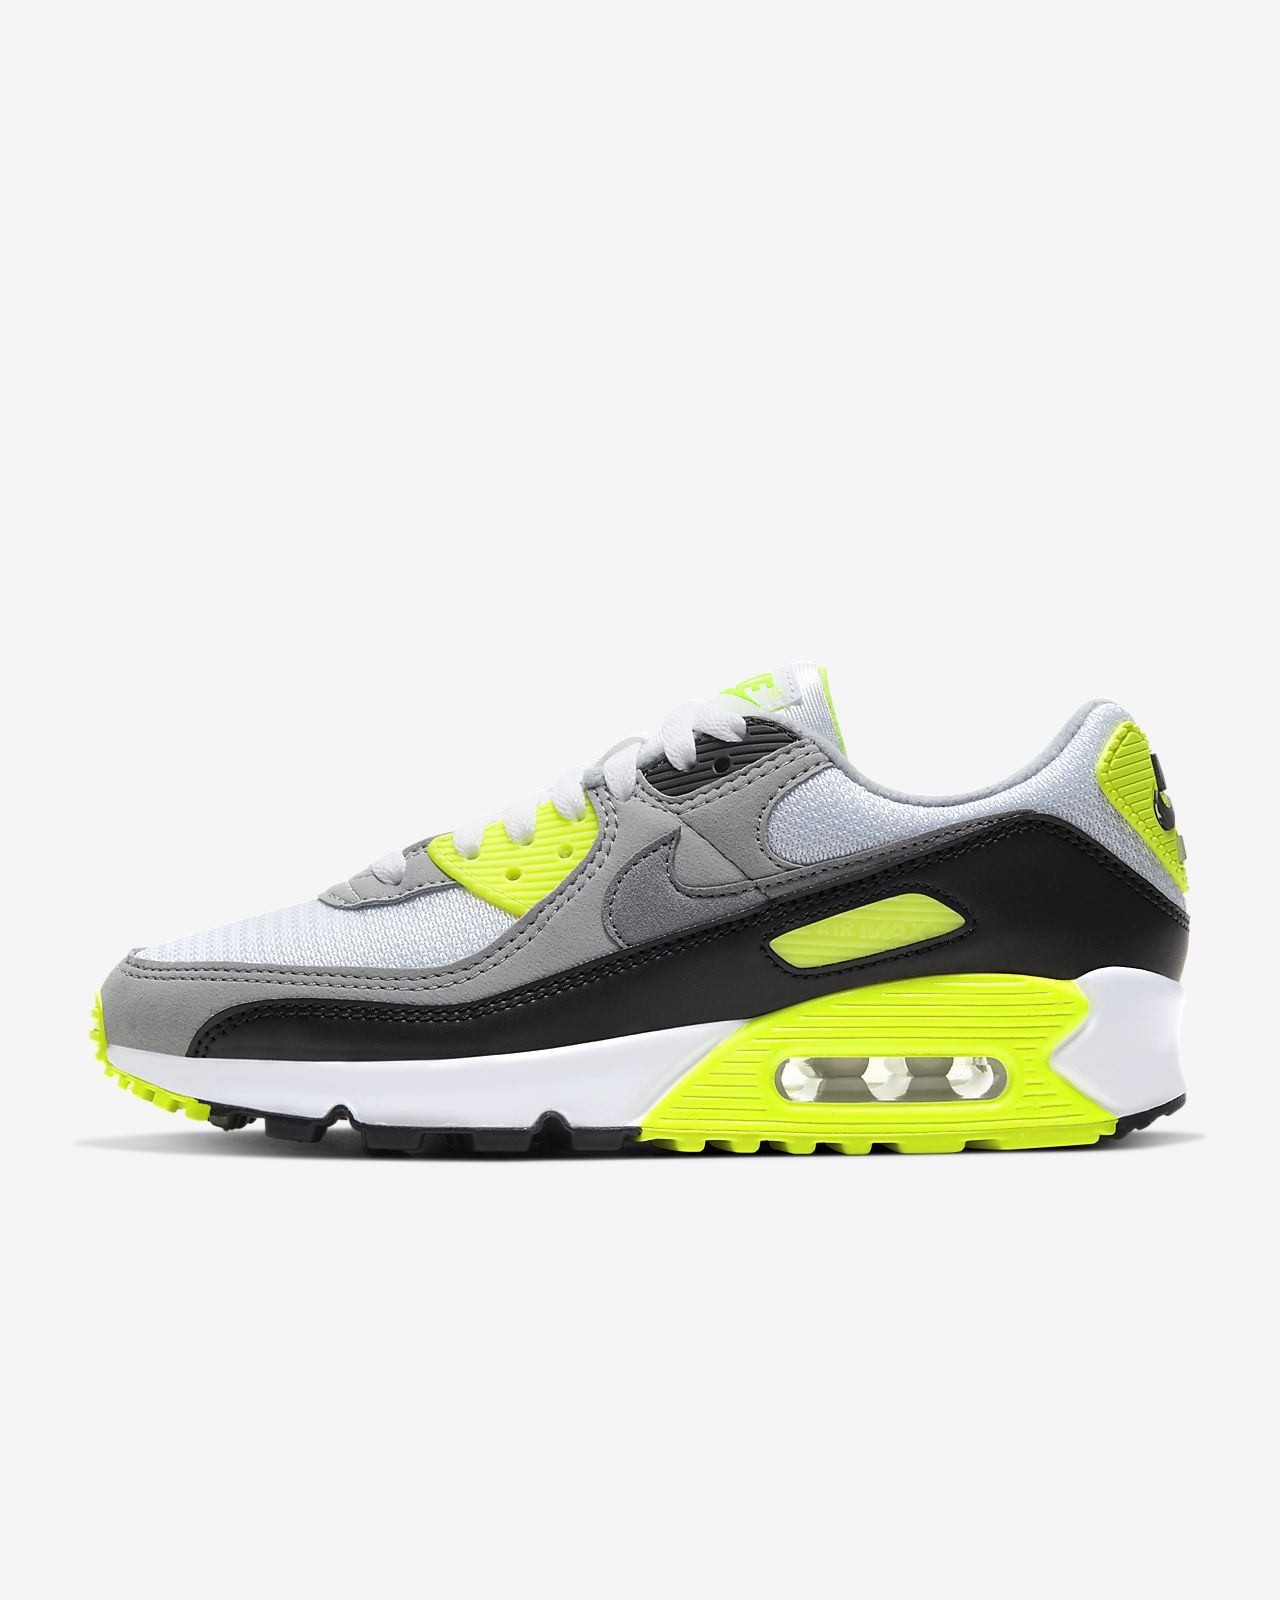 Nike Air Max 90 Release Dates Air Vapormax Ultra Women